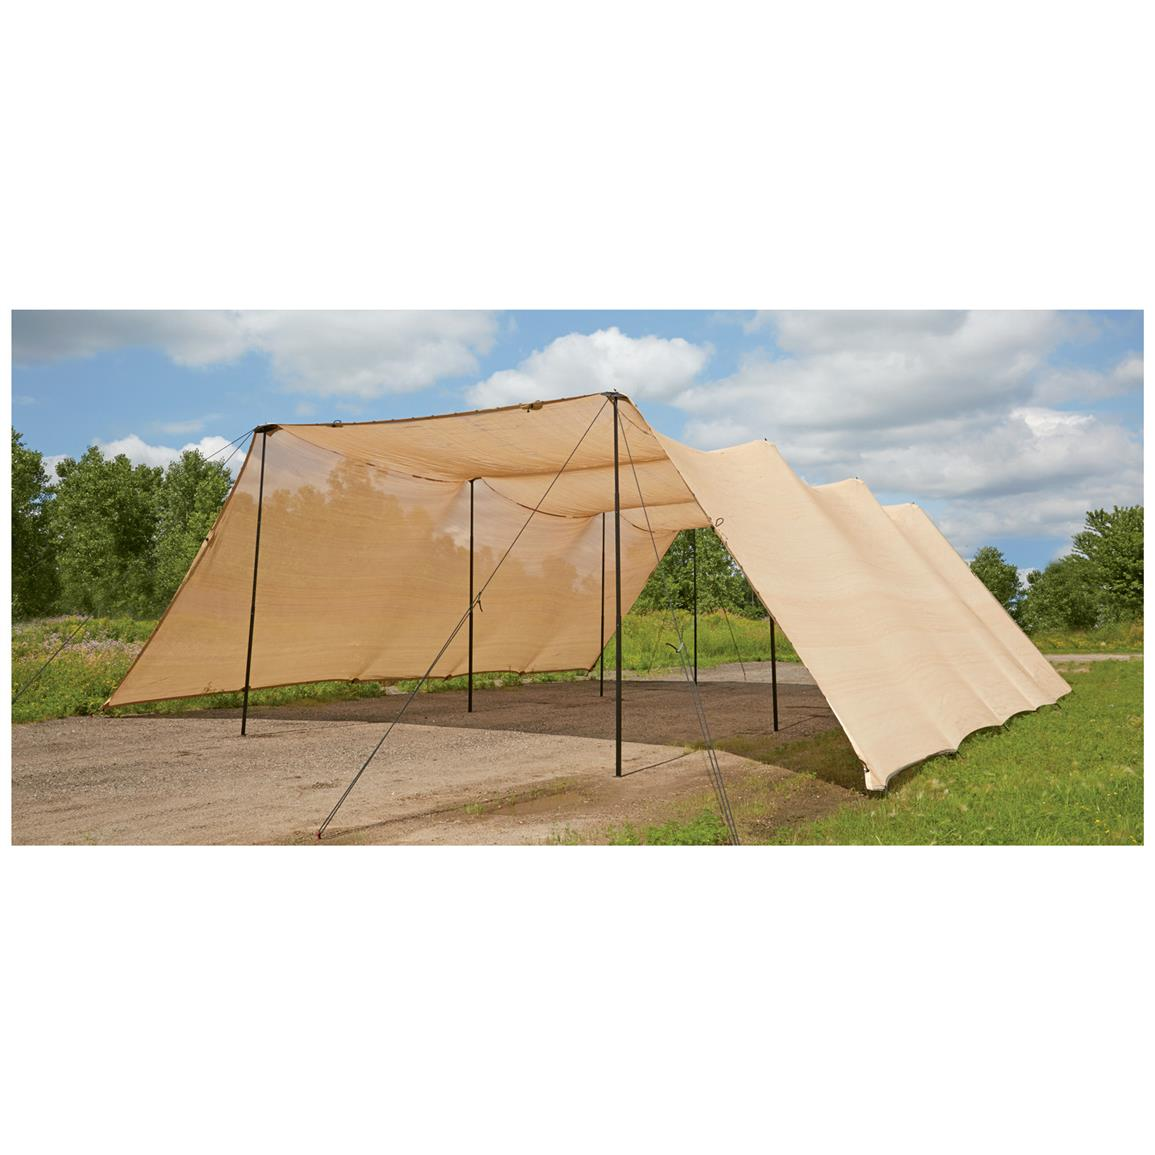 Cushty Multiple Shades Can Be Combined To Create Even Larger Structures Military Surplus Sun New Tents Accessories Sun Shade Tent Pop Up Sun Shade Tent Beach baby Sun Shade Tent